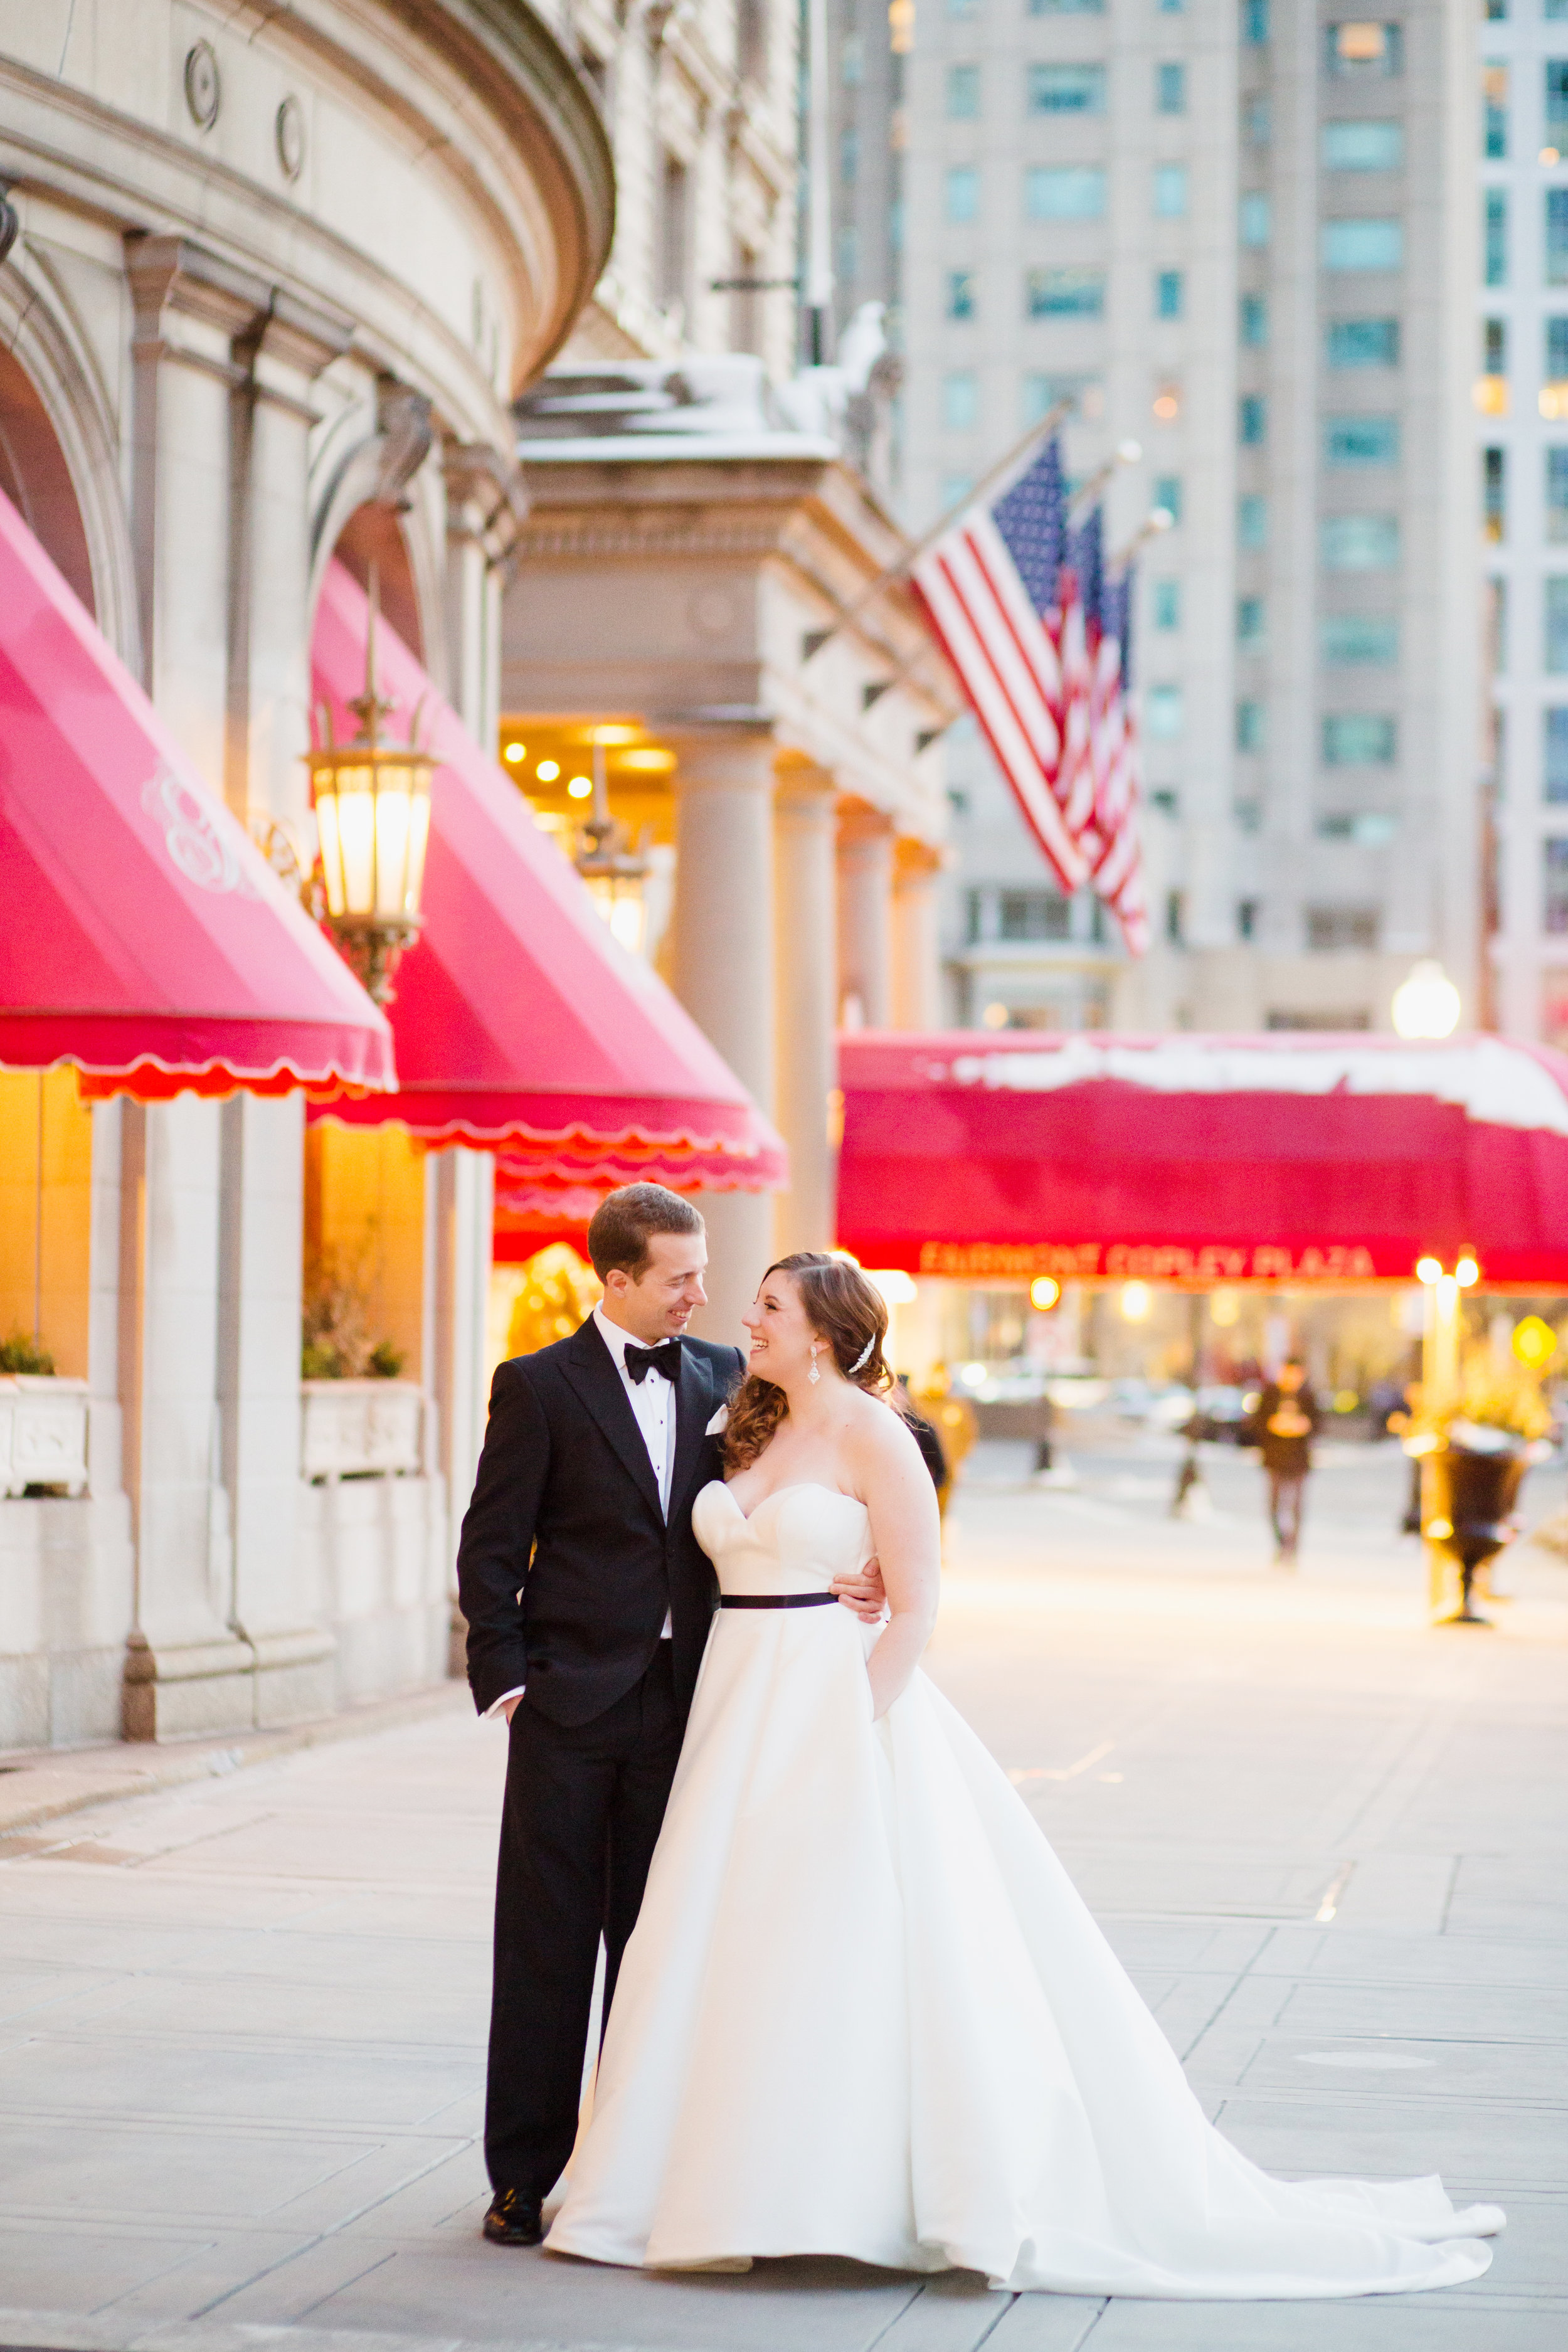 Fairmont-copley-plaza-wedding-photo-38.JPG